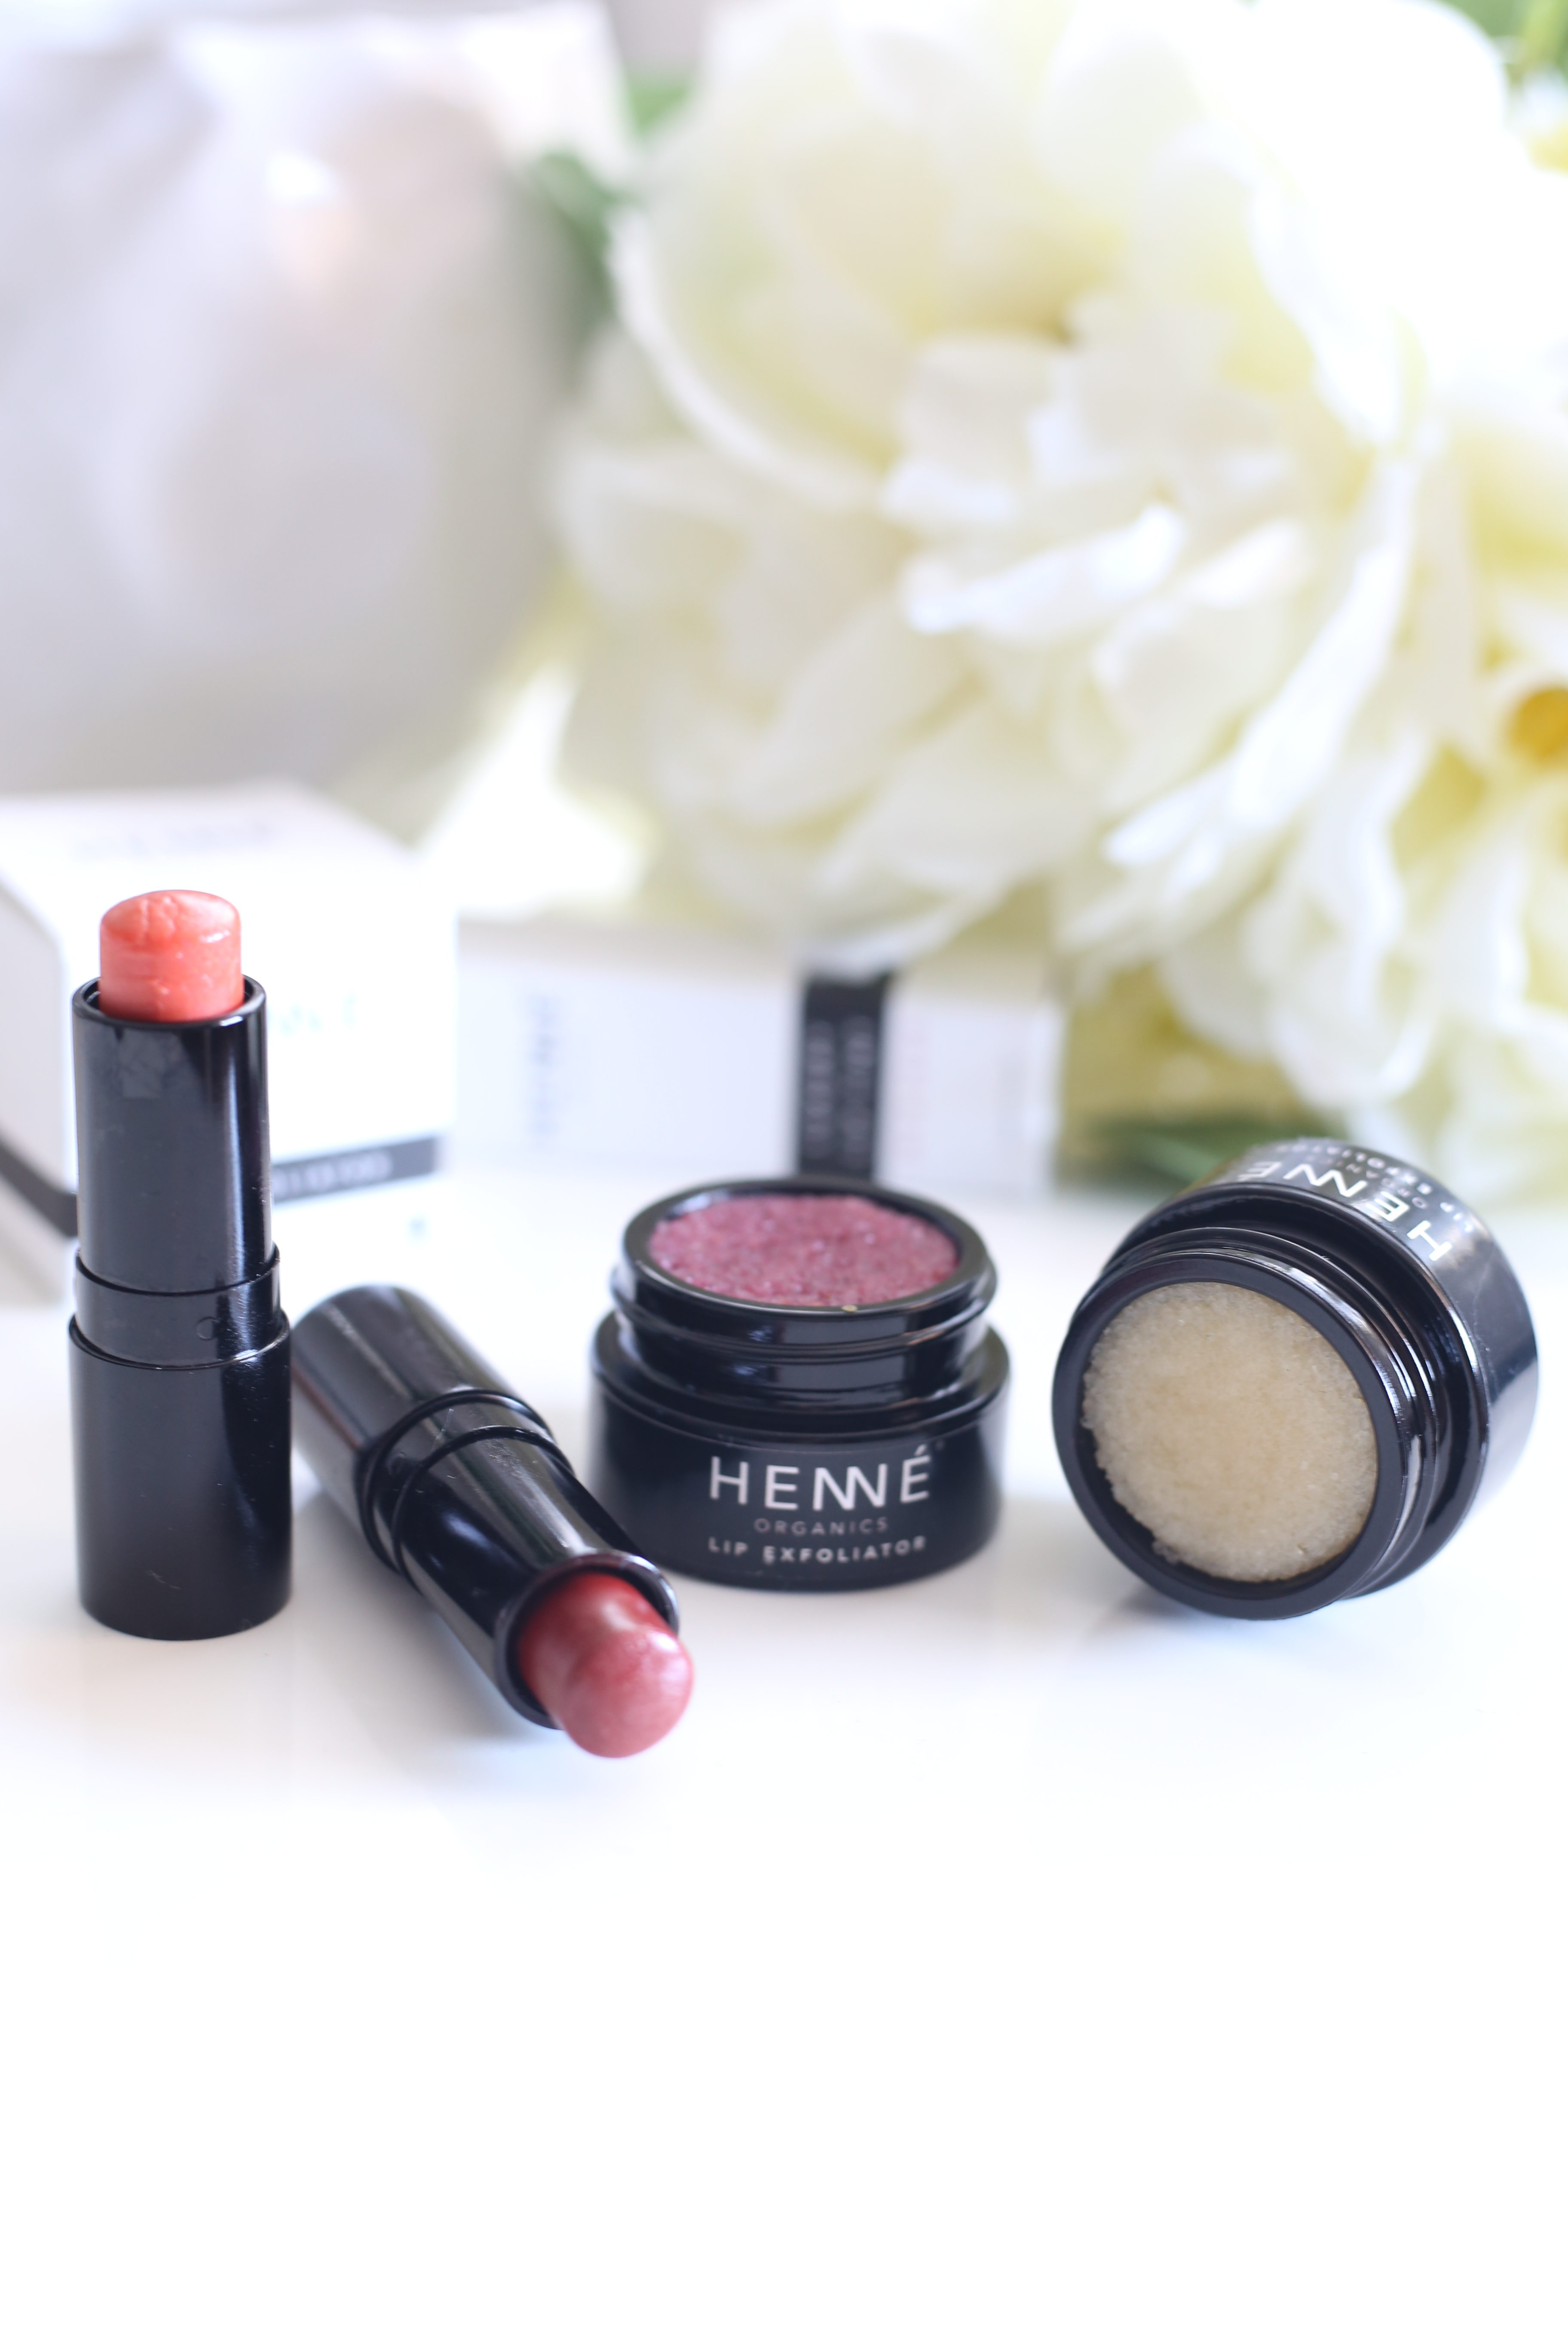 Henne Organics Lip Tint in Intrigue